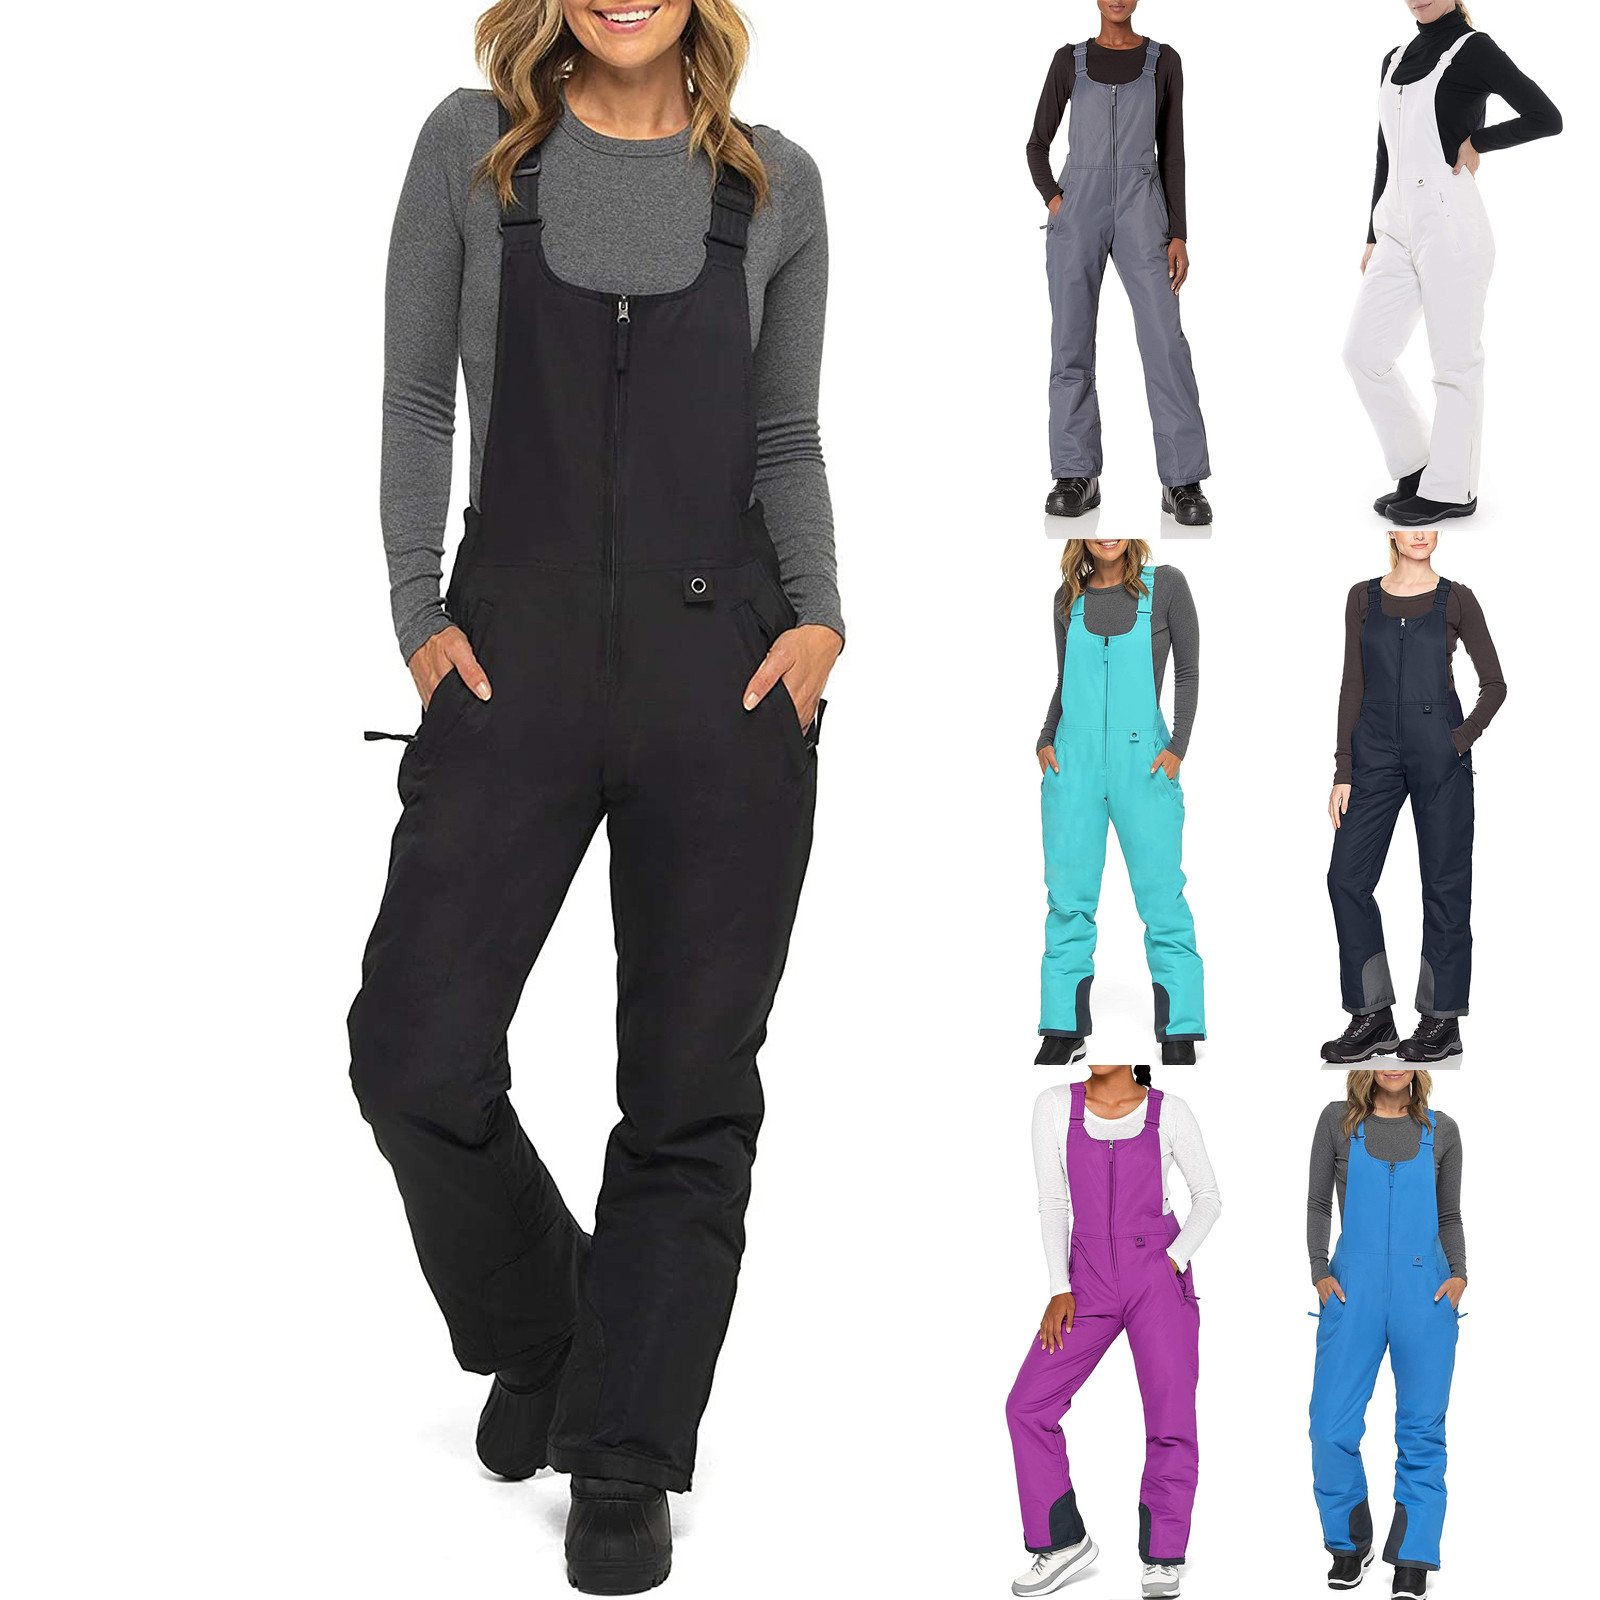 Women's Pants Insulated Bib Overalls Solid Color Pocket One-piece Suspenders Trousers Winter Ski Warm Thick Pants Женские Штаны